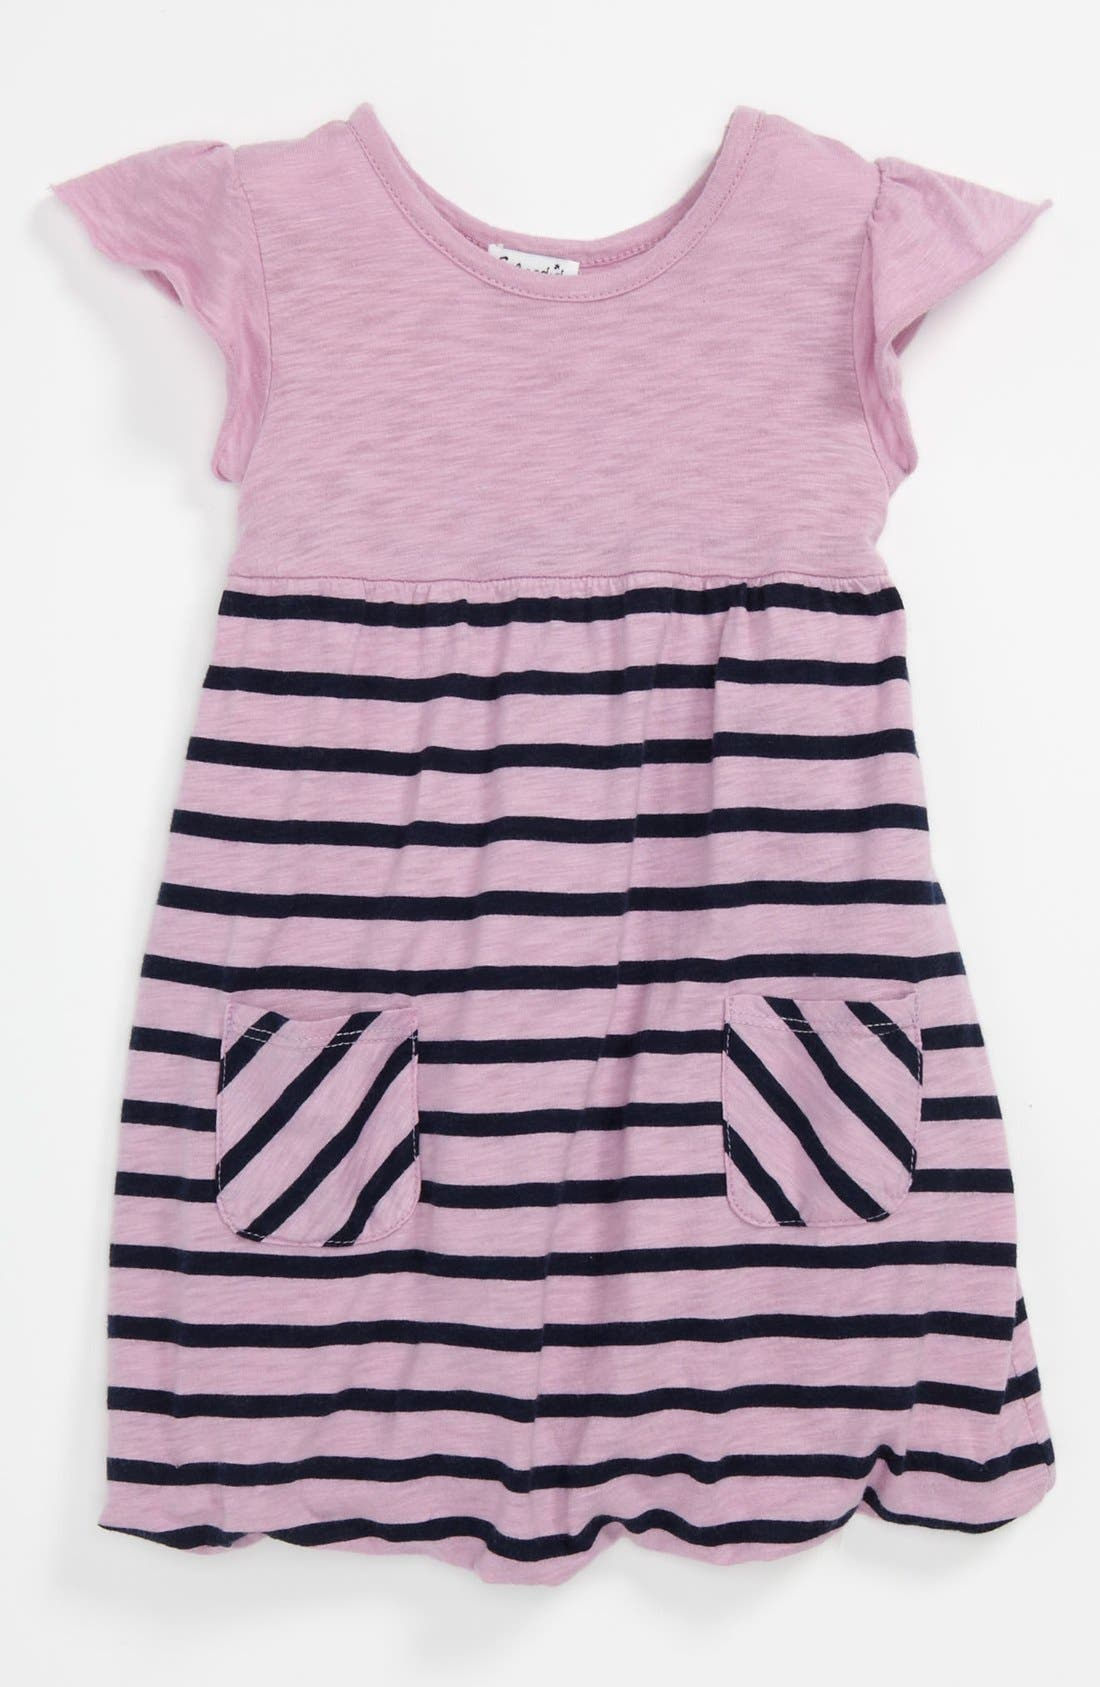 Alternate Image 1 Selected - Splendid 'Miami' Stripe Dress (Baby)